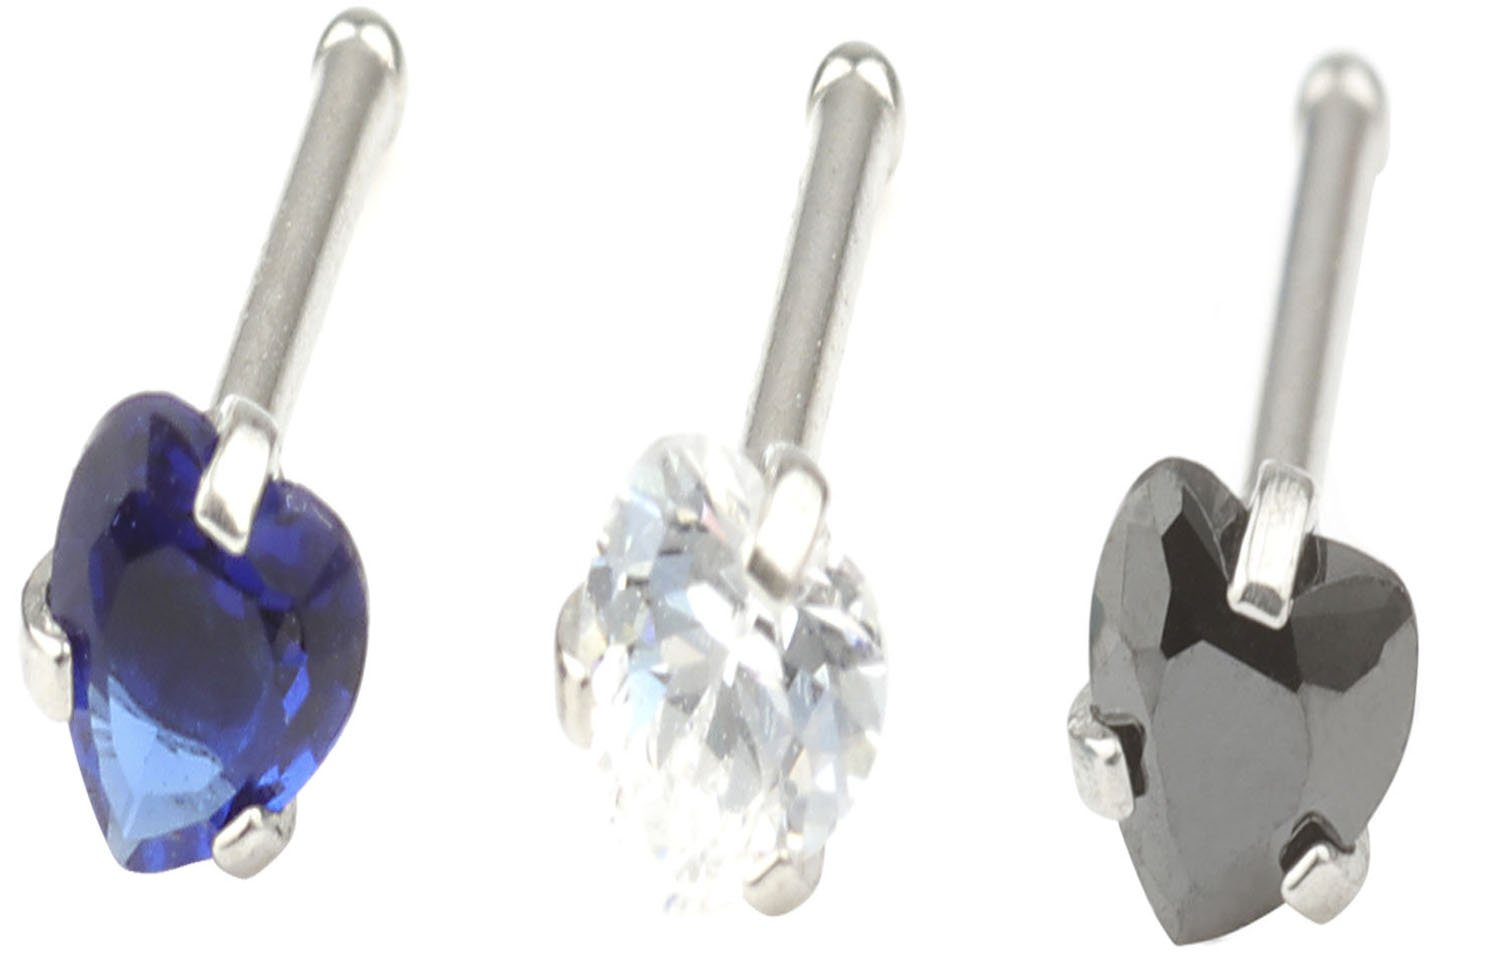 CM A+ 20G 3 Pcs Mix Stainless Steel Nose Rings Studs Piercing Body Jewelry 2.5mm Heart Shape Cubic Zirconia &13